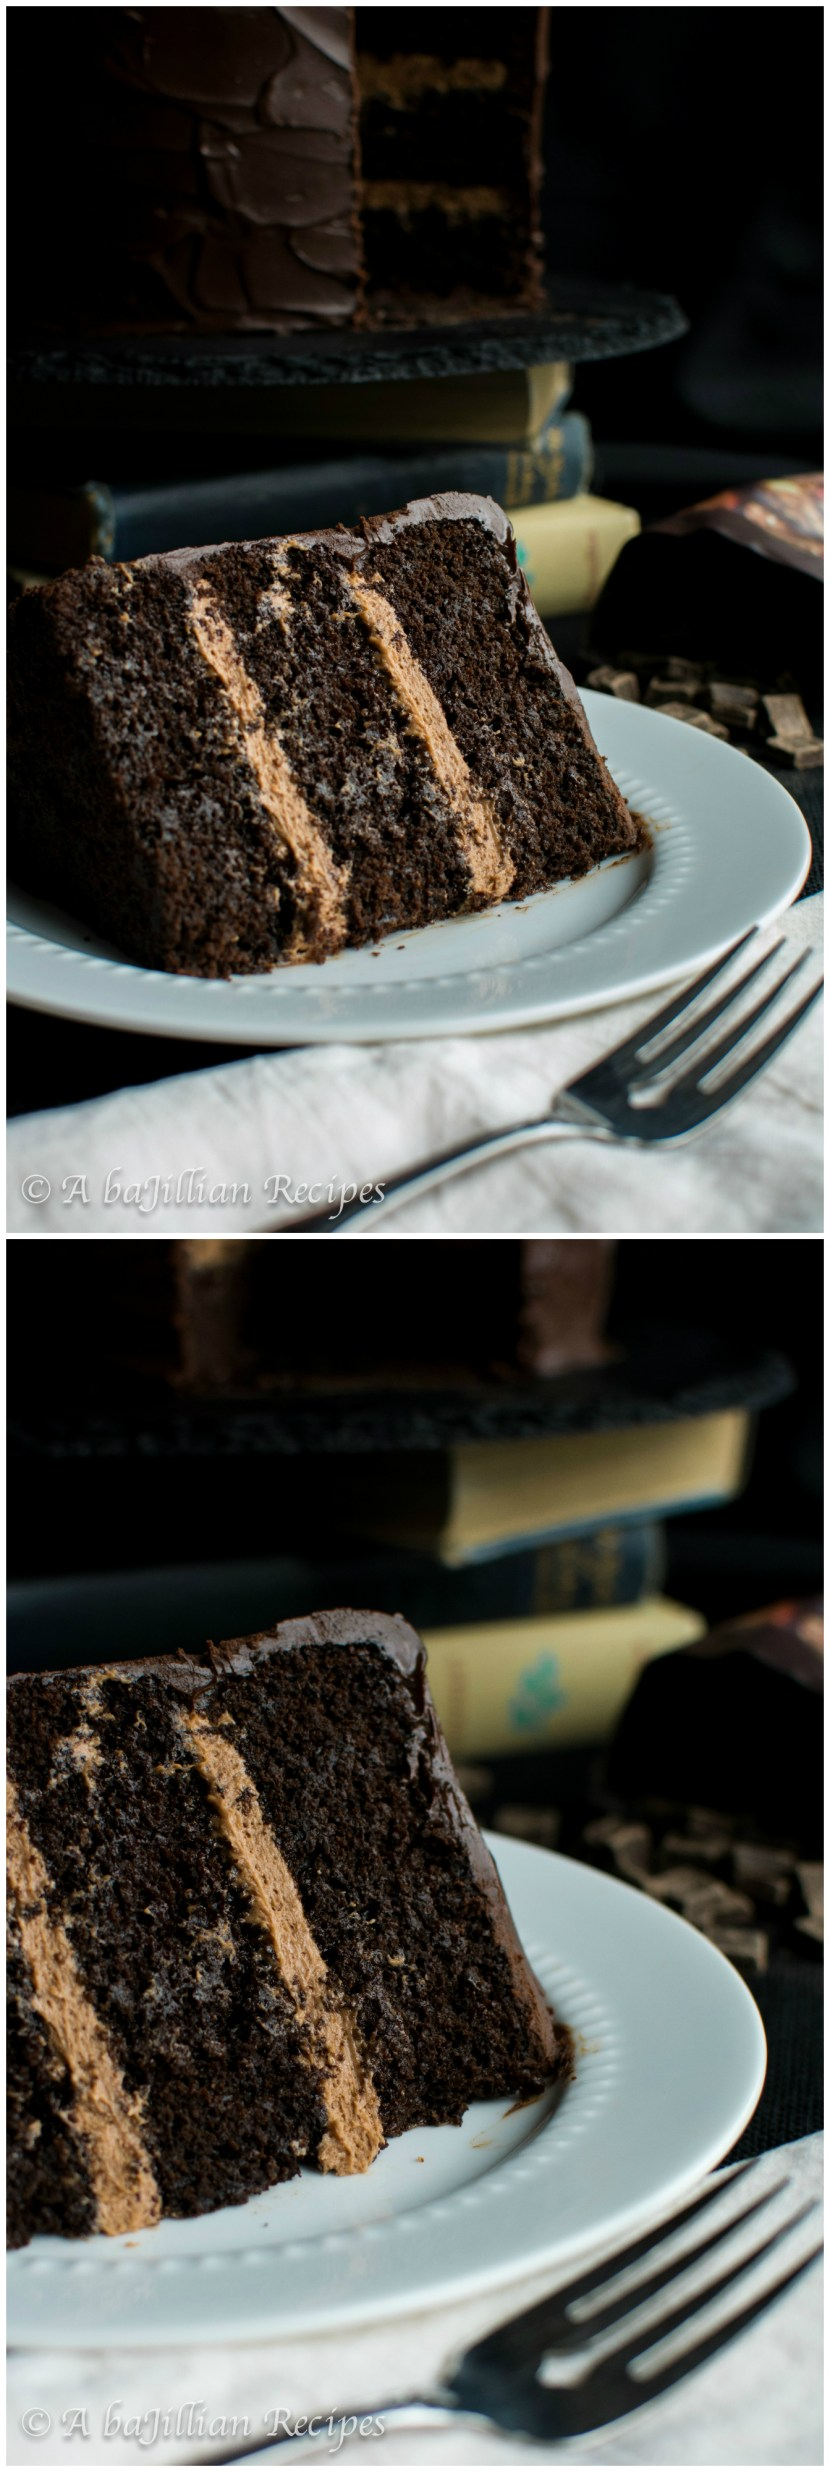 miss-trunchbulls-chocolate-cake-abajillianrecipes.com